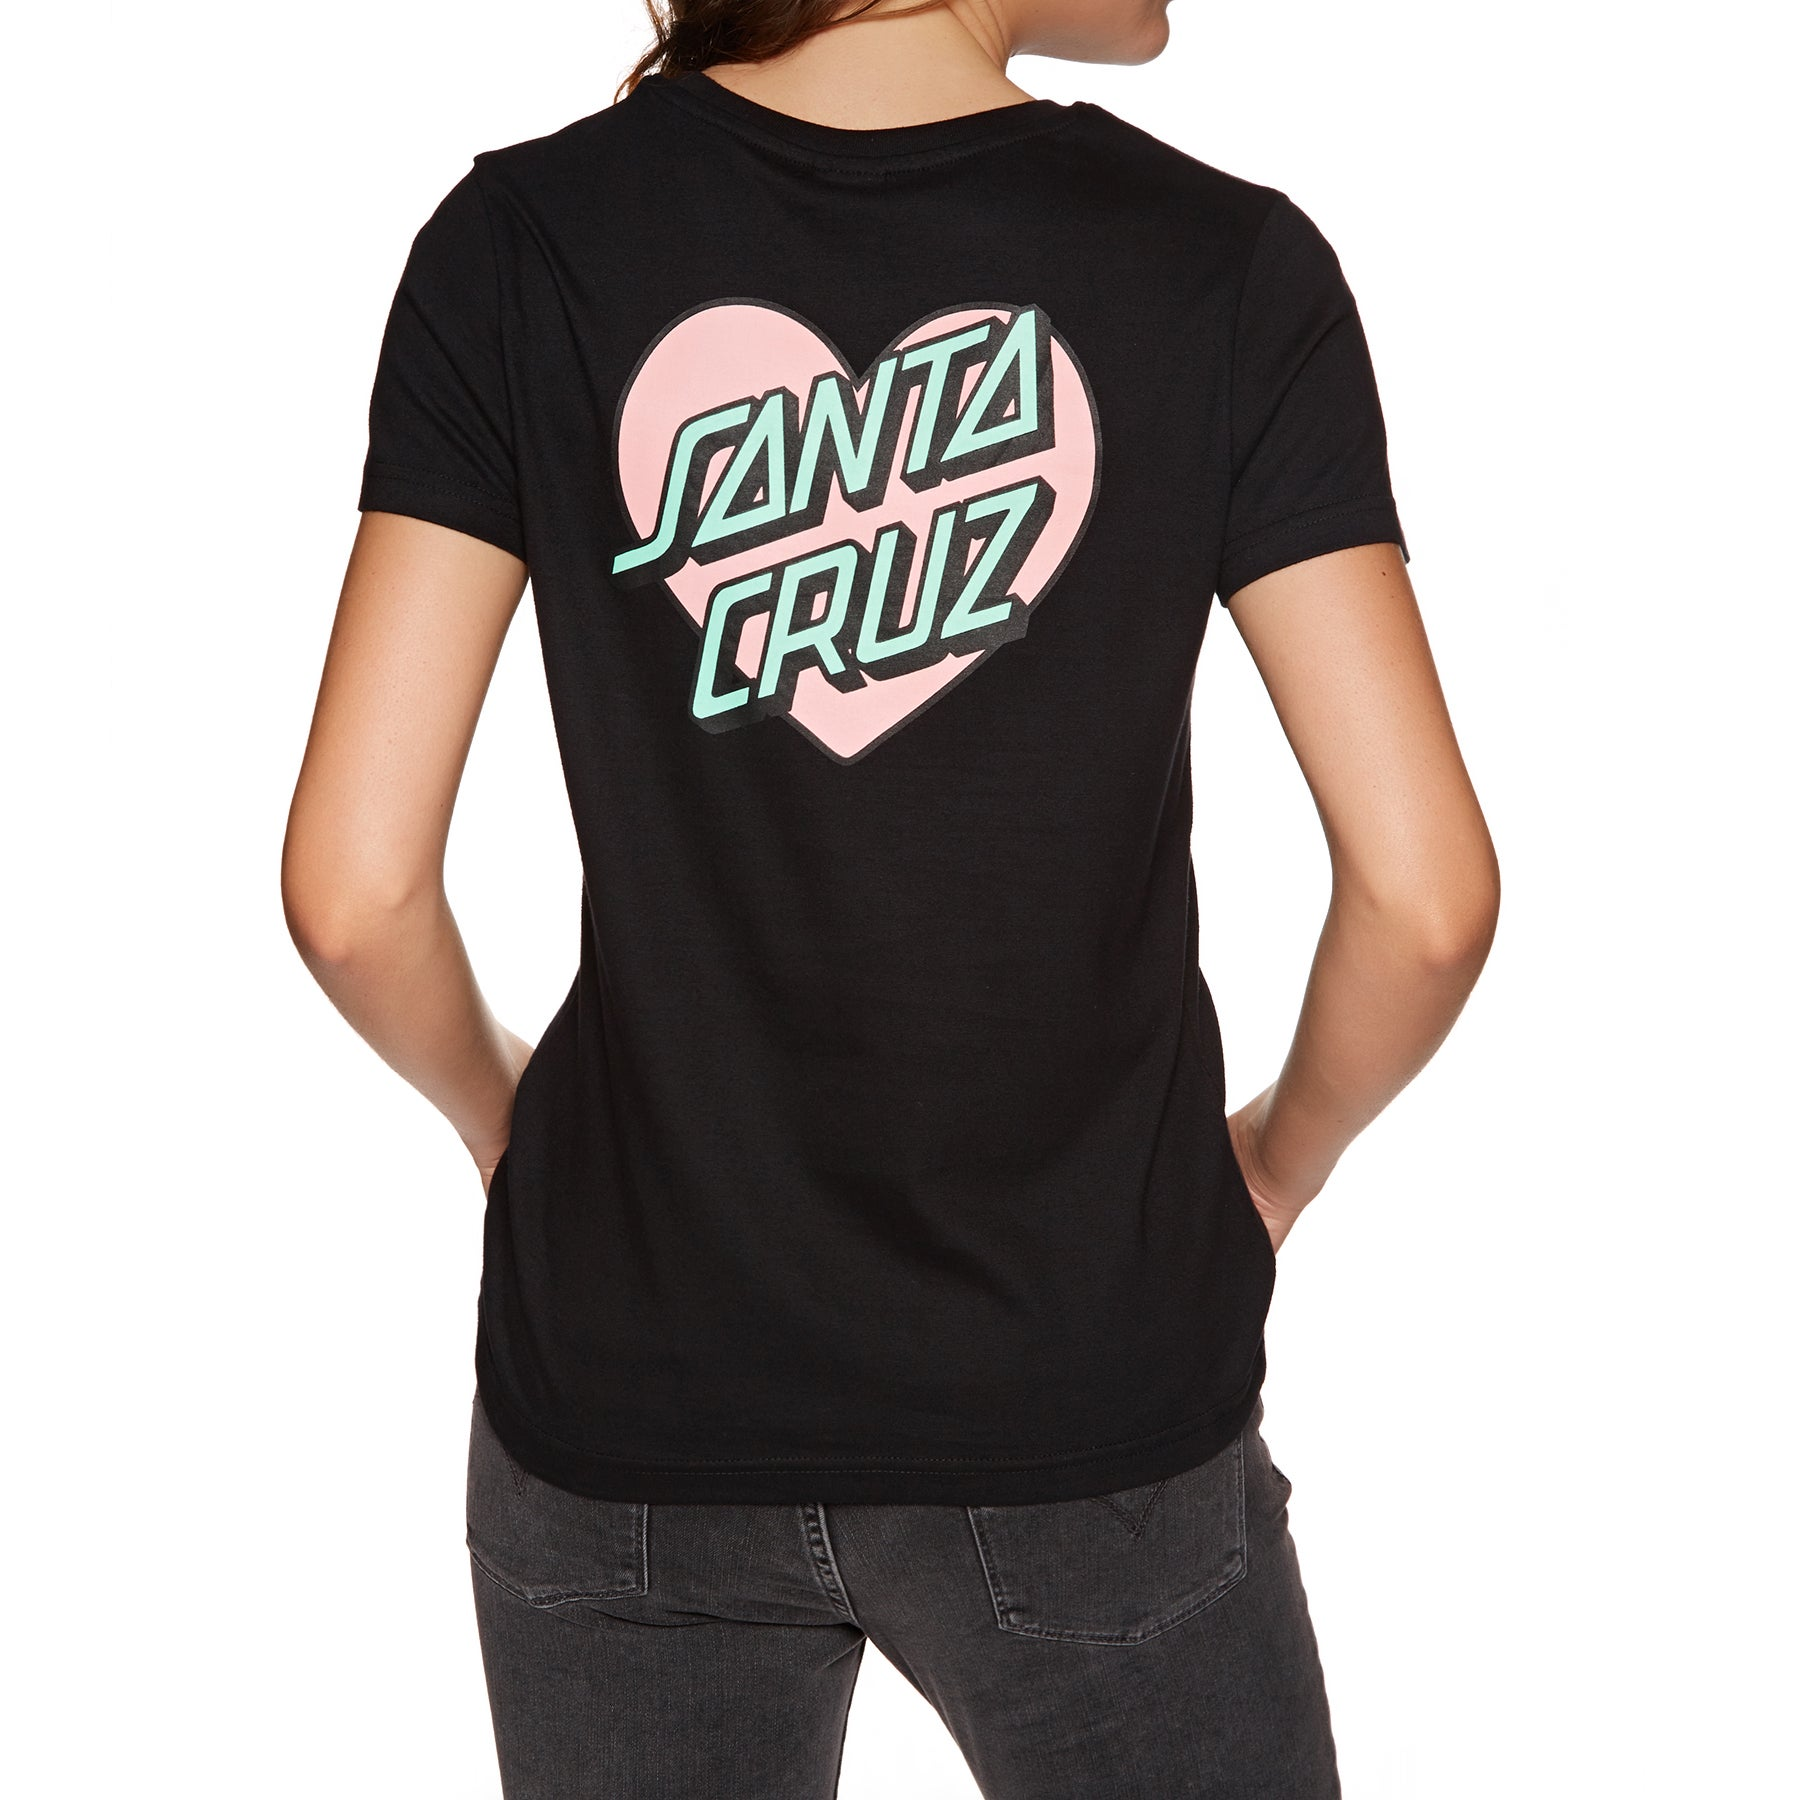 Santa Cruz Heart Dot Womens Short Sleeve T-Shirt - Black